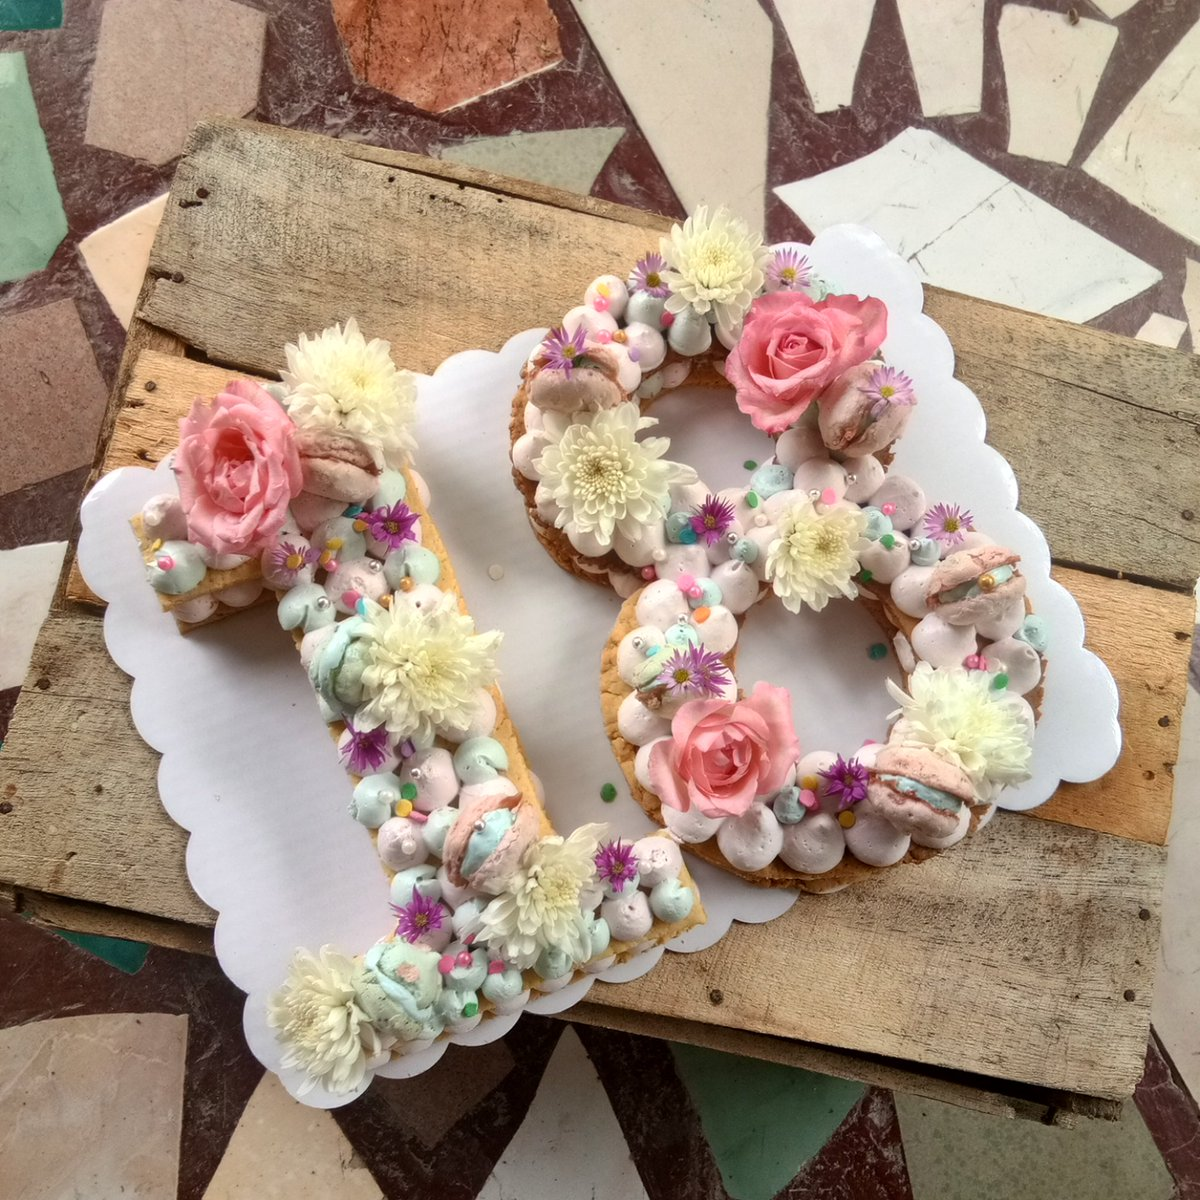 Hi twitter! I'm Heart Paler a student baker based in Padada I do sell and deliver baked goodies from Padada to digos  you can dm me on twitter,  pm me on my facebook or call/ text me 09071462735 for orders  #SupportLocal<br>http://pic.twitter.com/yitgSI6yFU